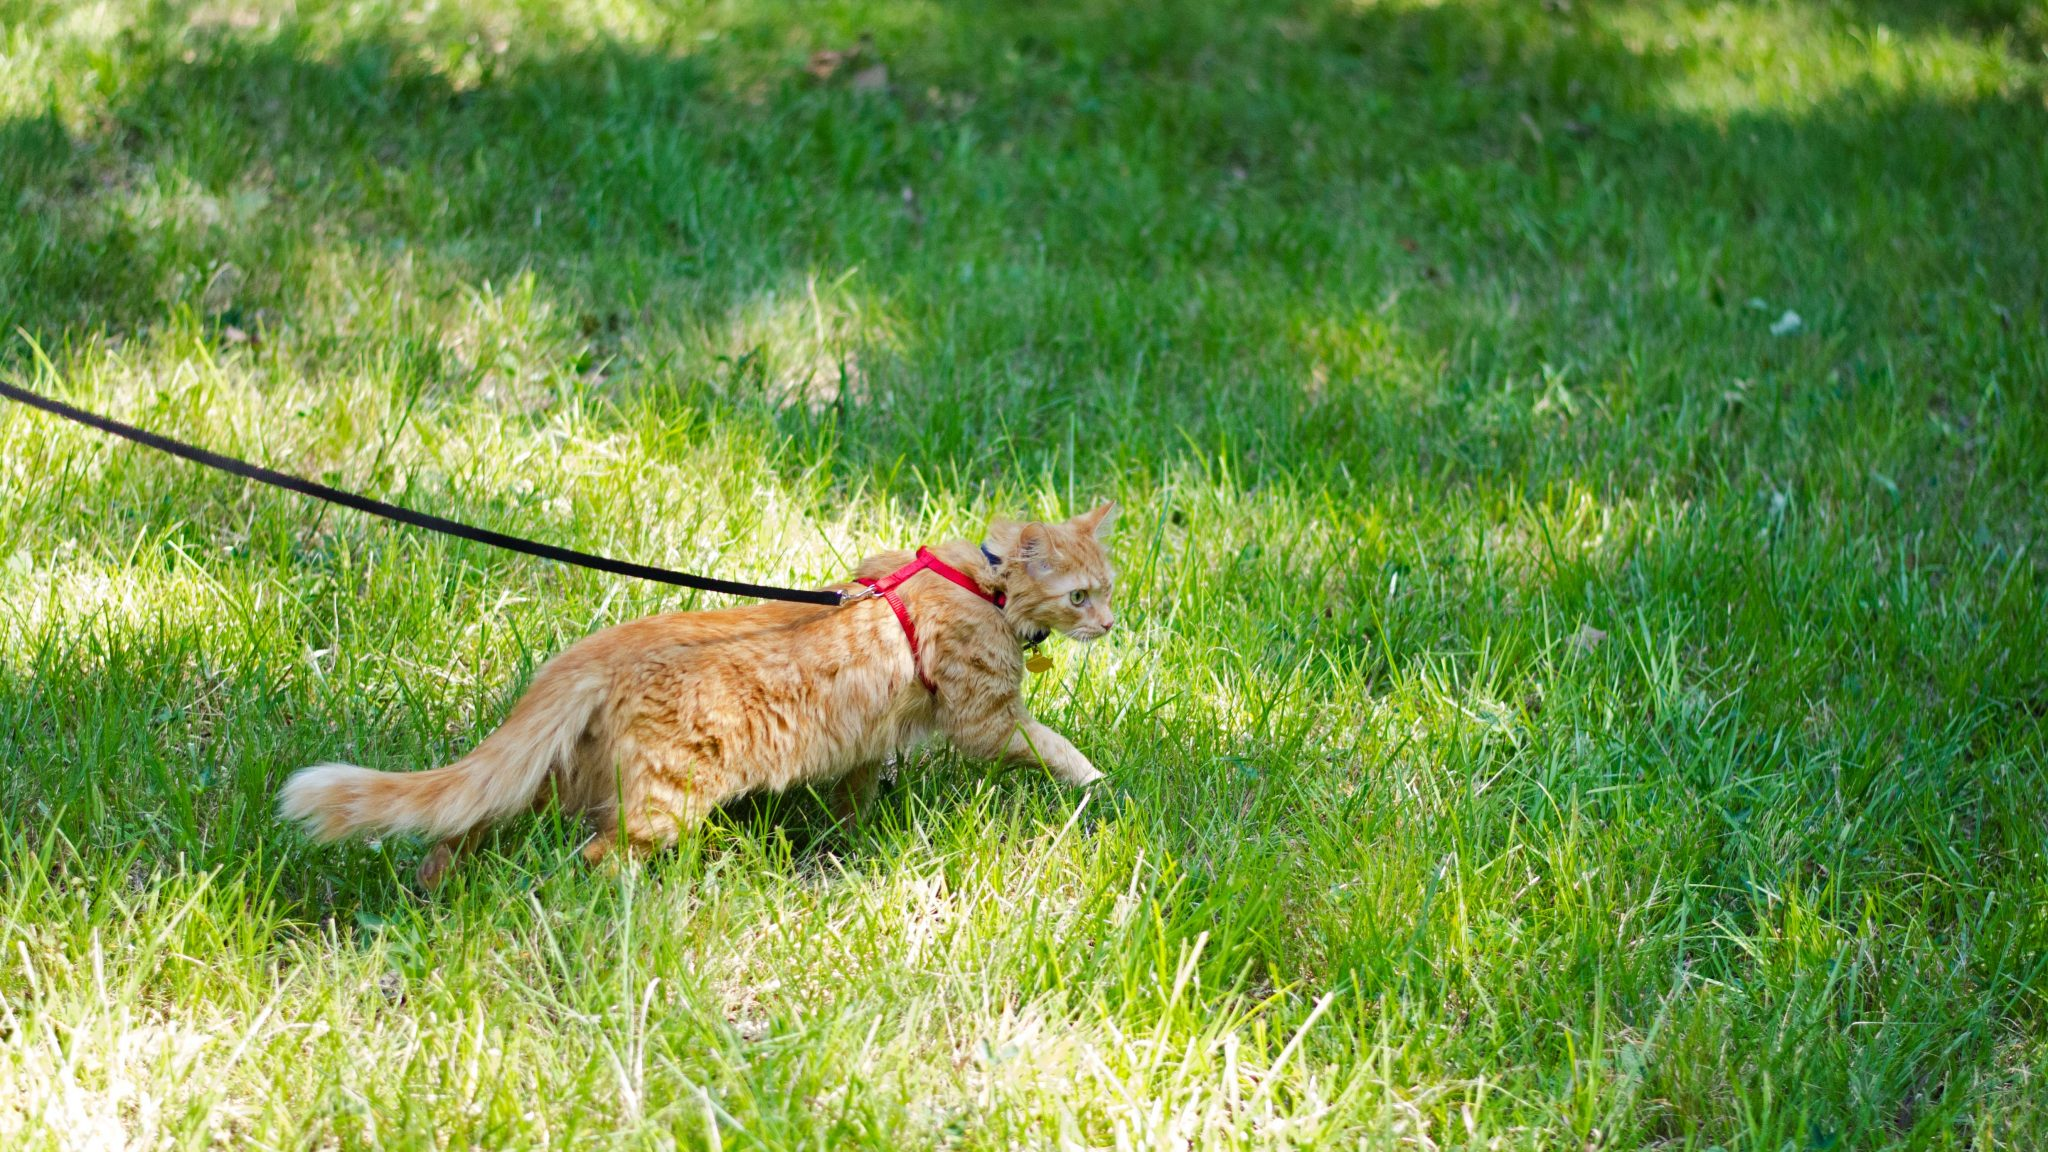 Orange cat walks on leash